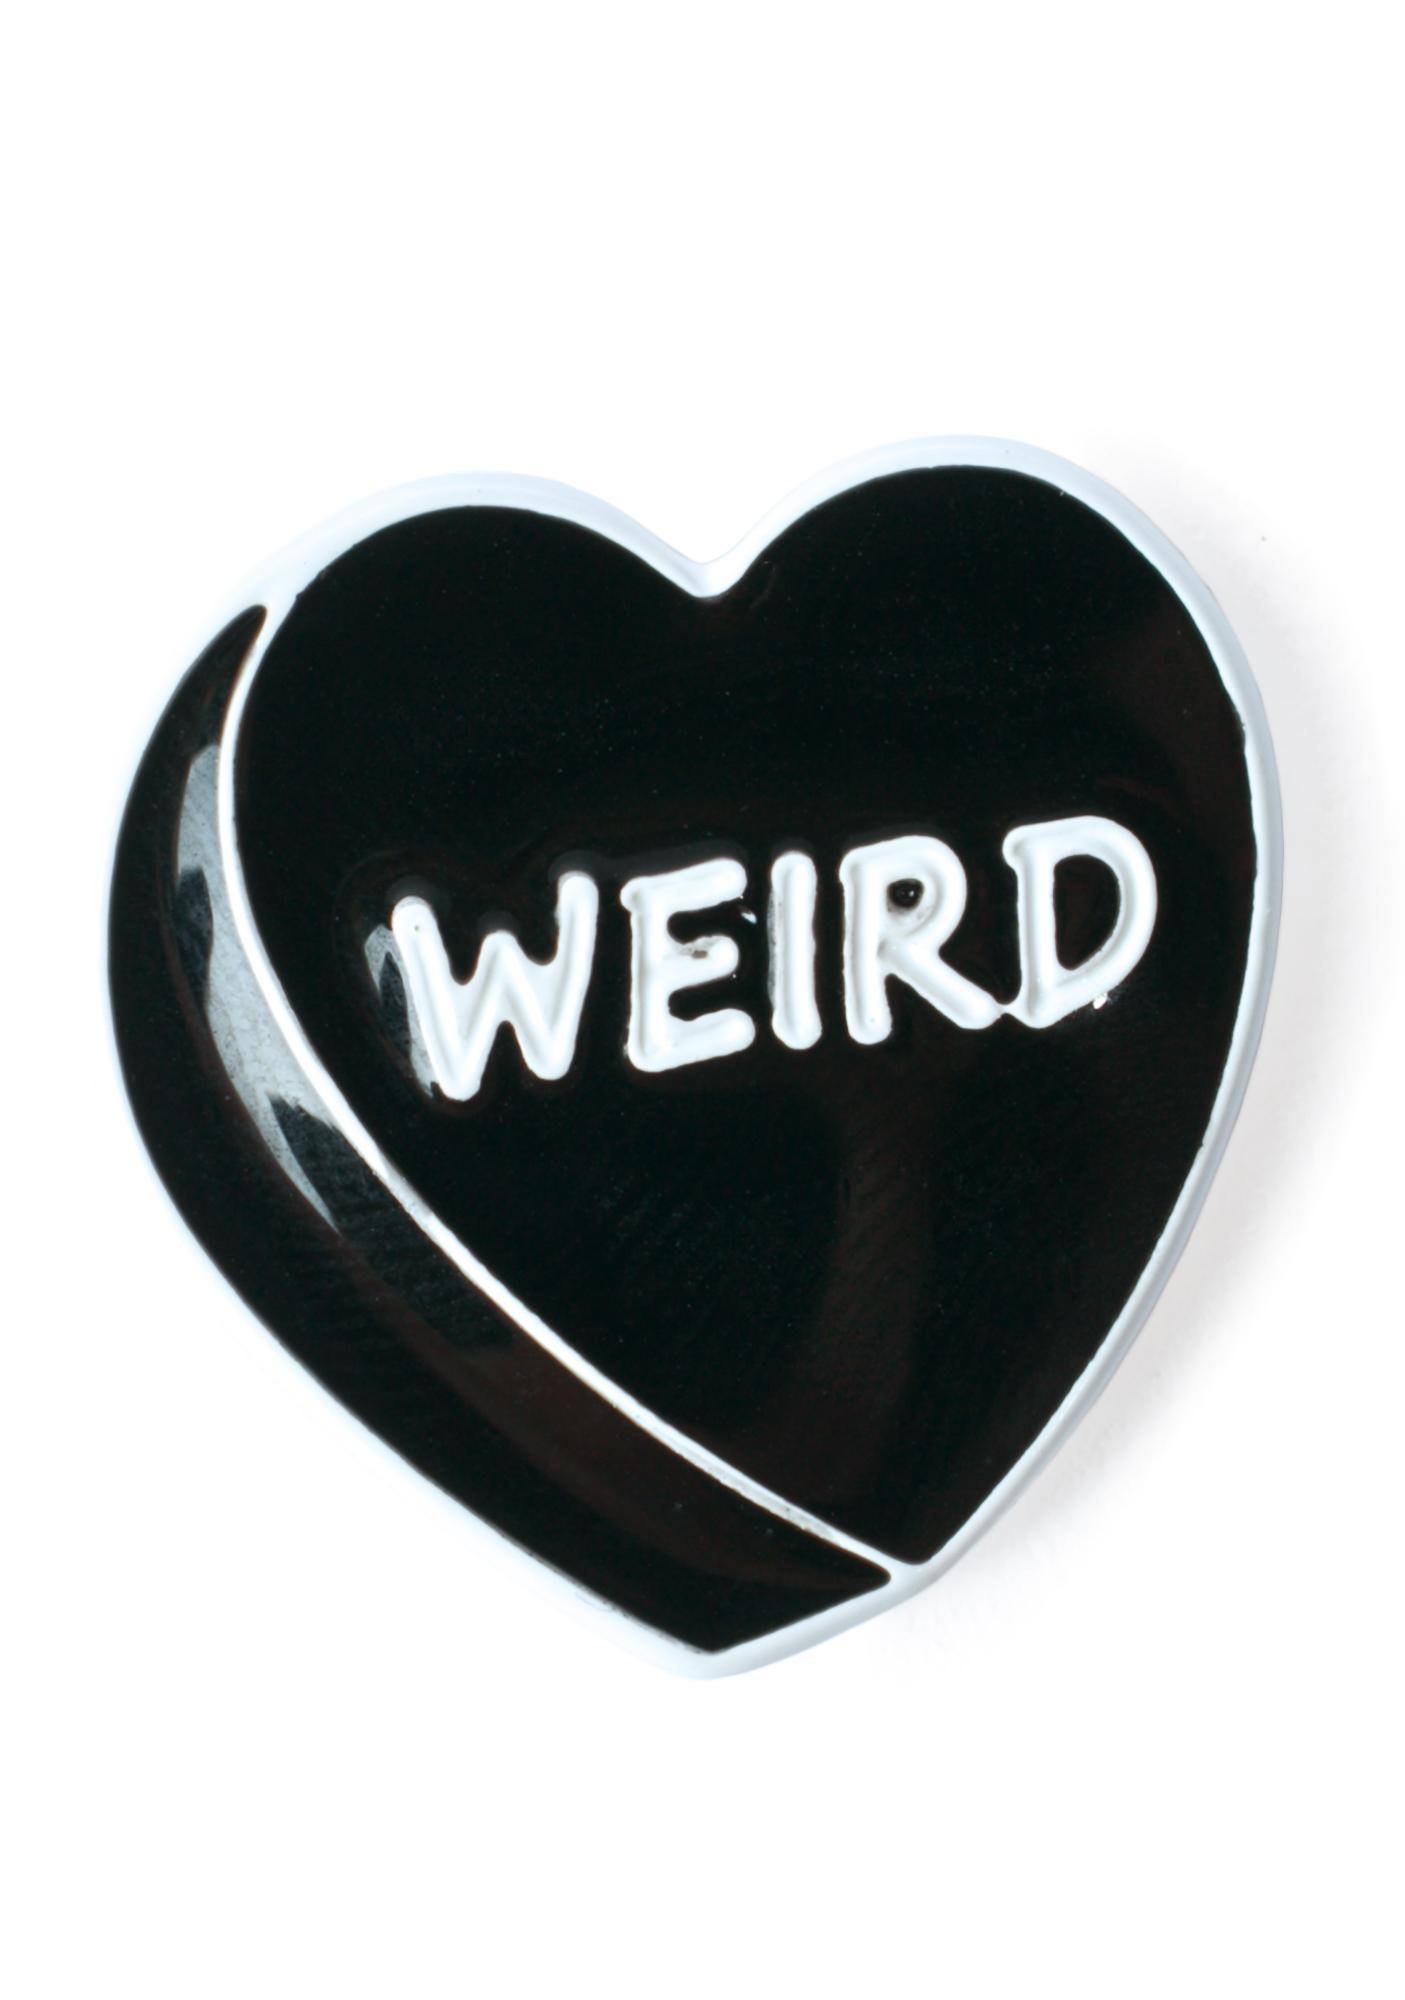 The Candy Kids Weird Gurl Valentine's Box Set